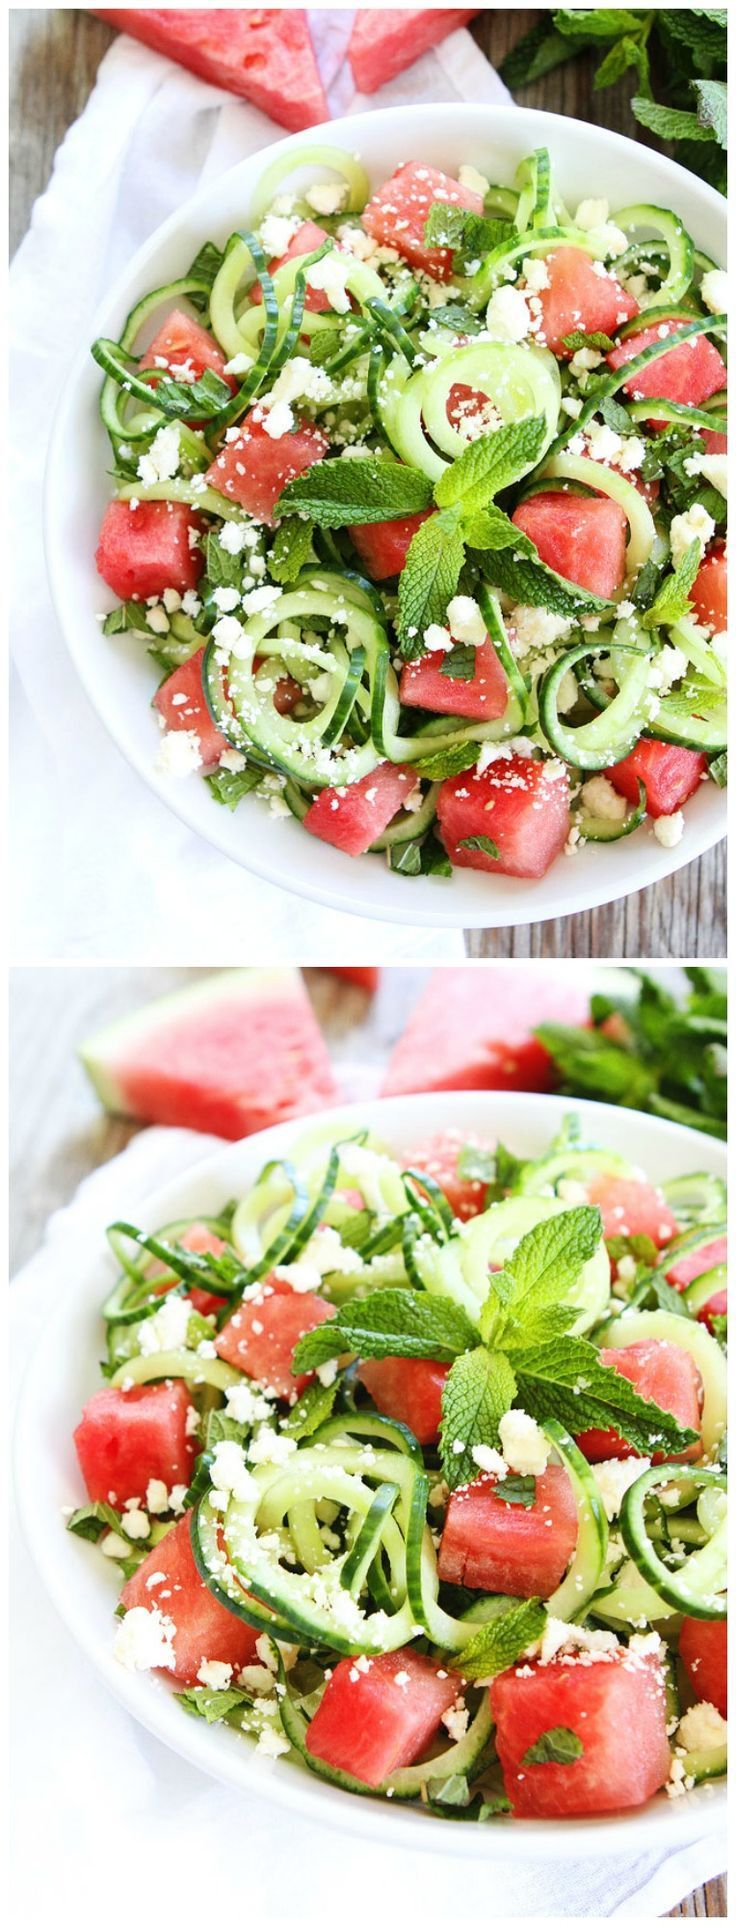 Cucumber Noodle, Watermelon, and Feta Salad Recipe on http://twopeasandtheirpod.com This simple and refreshing salad is perfect for summertime.